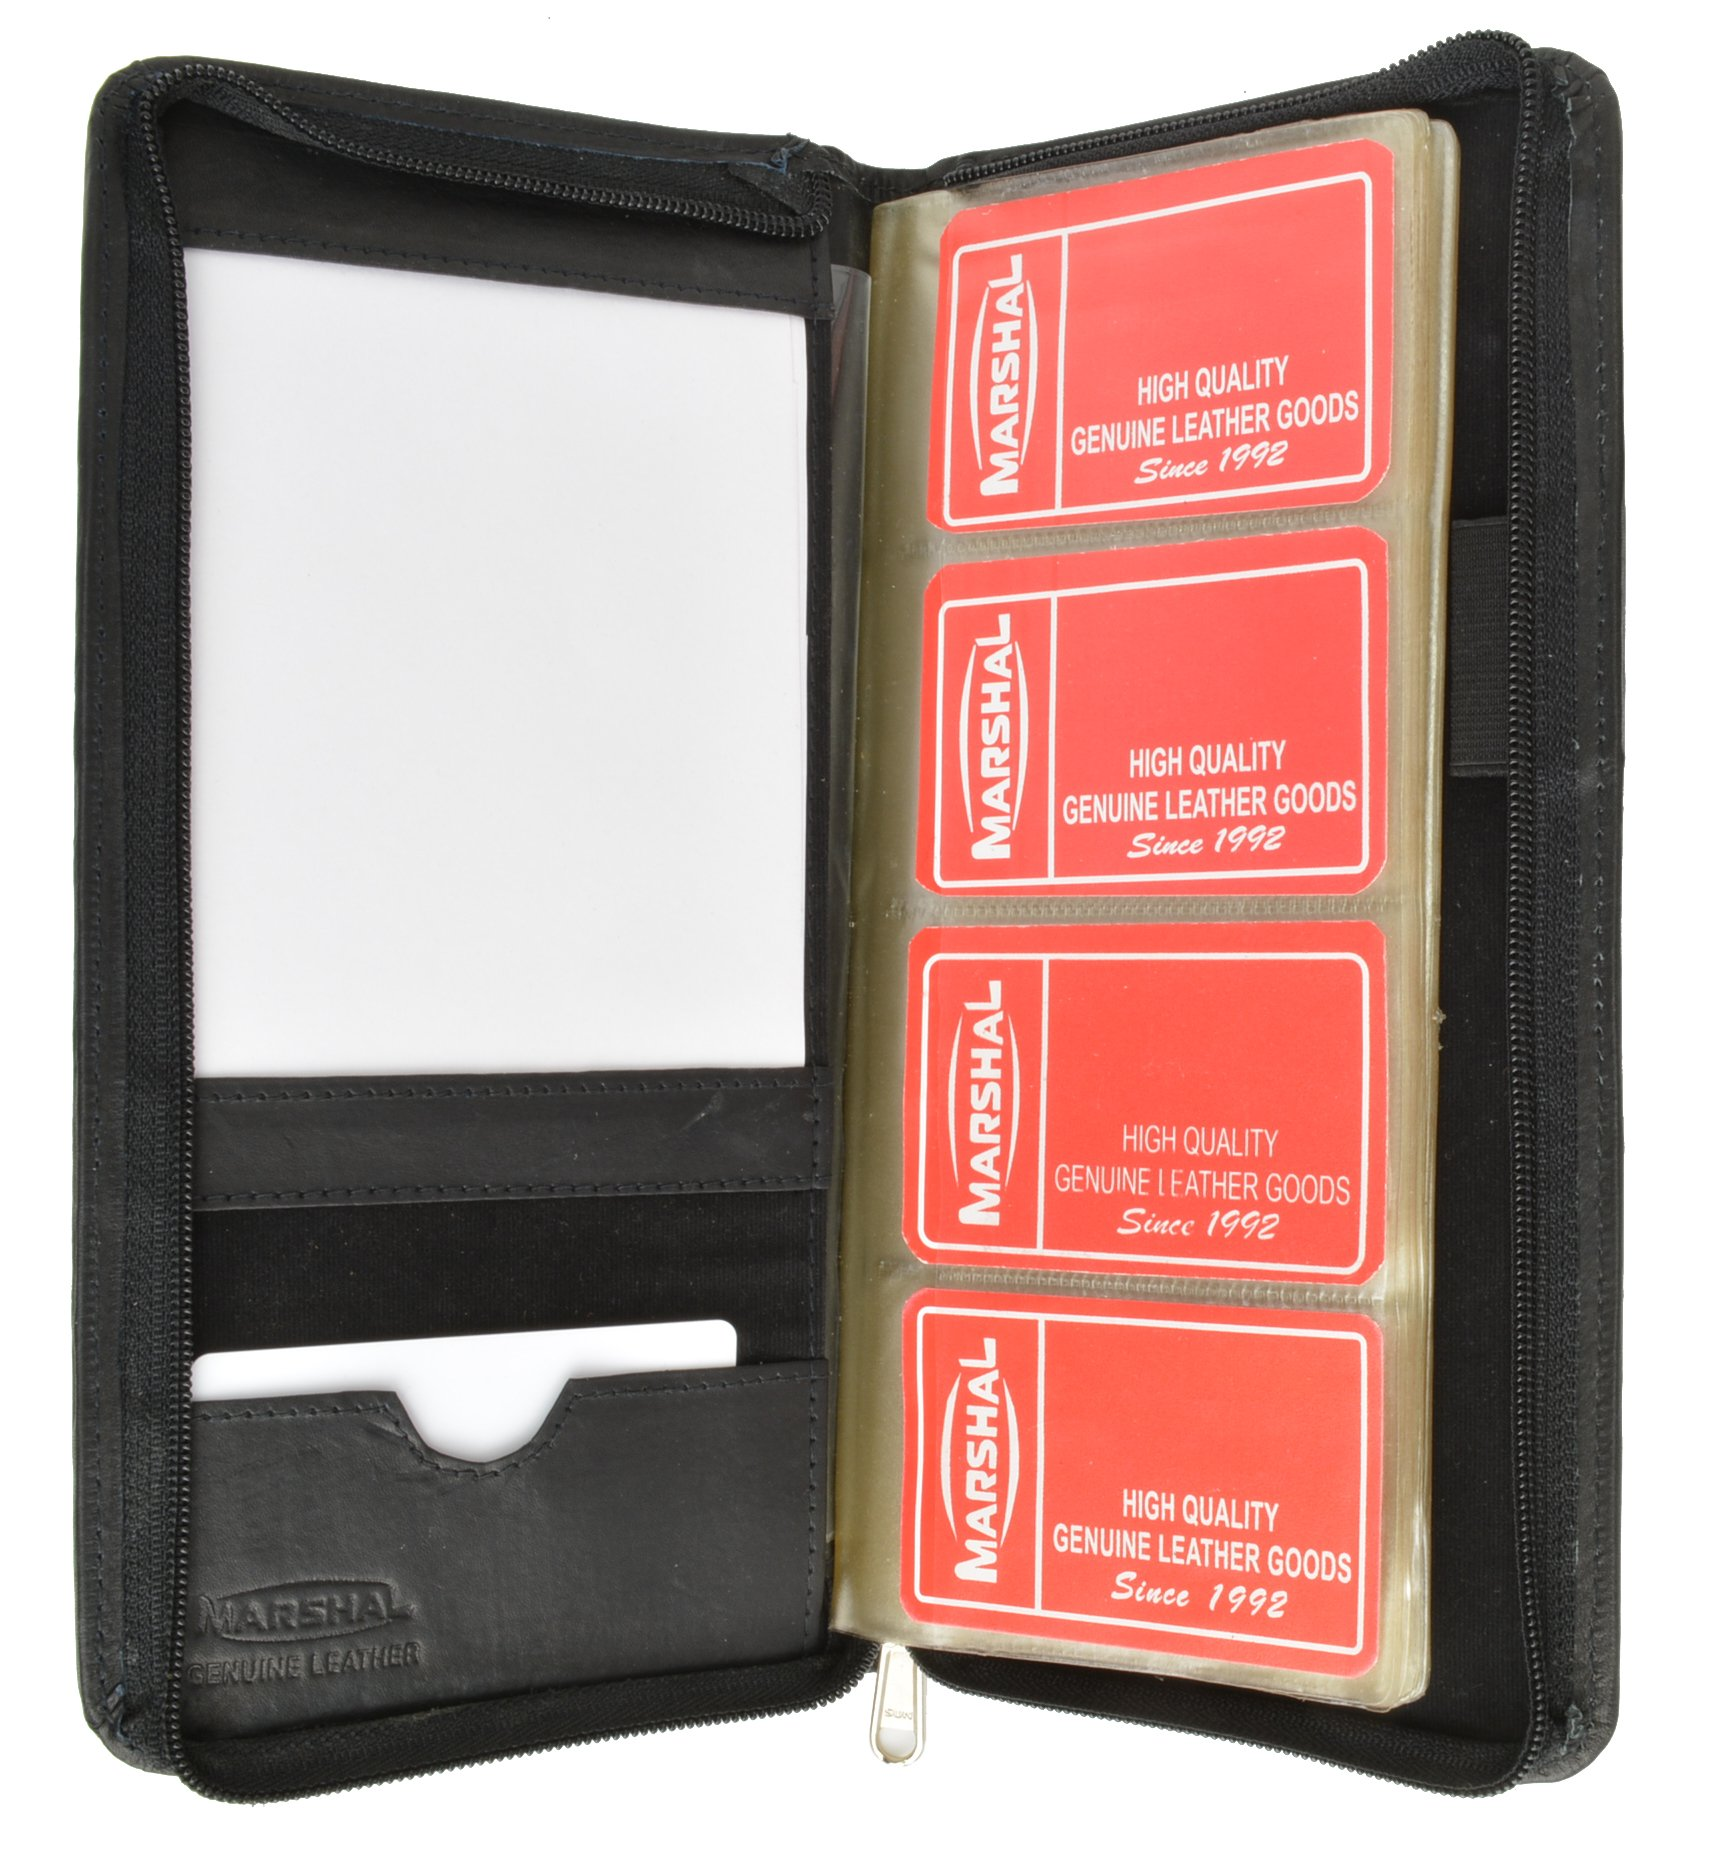 72 Count Credit Card/Business Card Holder with Zip Around Closure (Black)